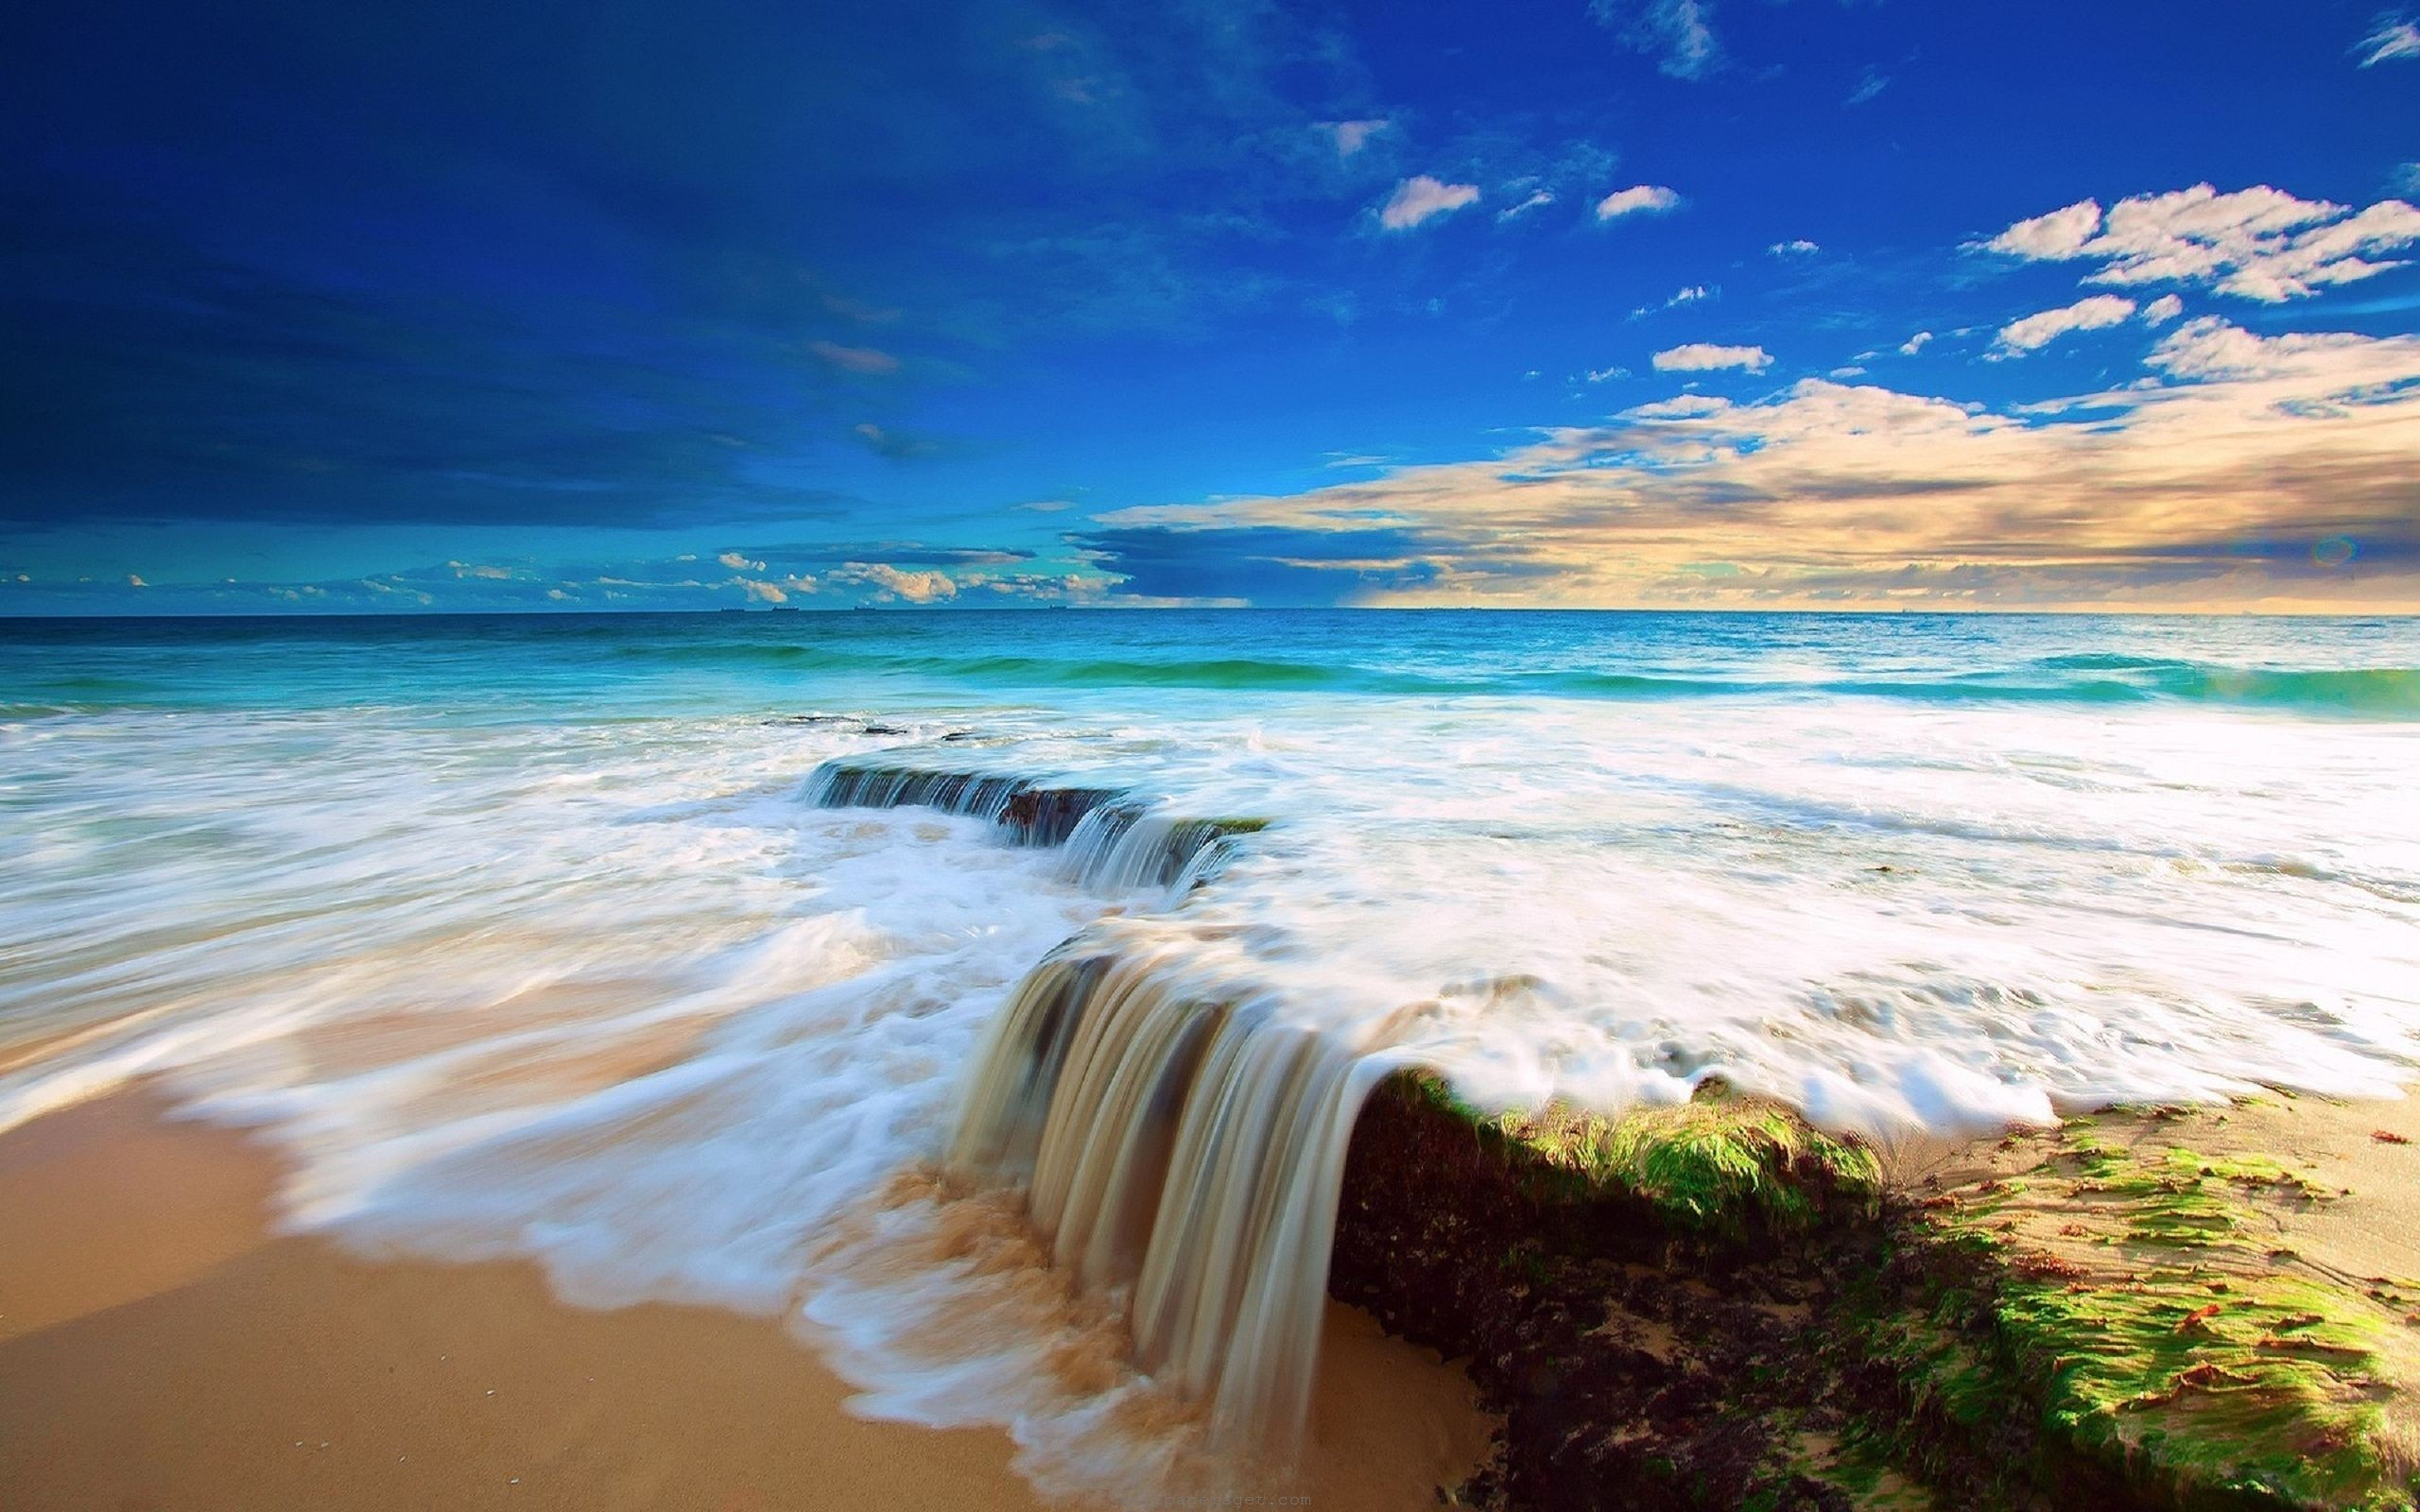 2560x1600 Beautiful Beach Ocean Water HD Wallpaper Download awesome, Nice and High  Quality #HD #